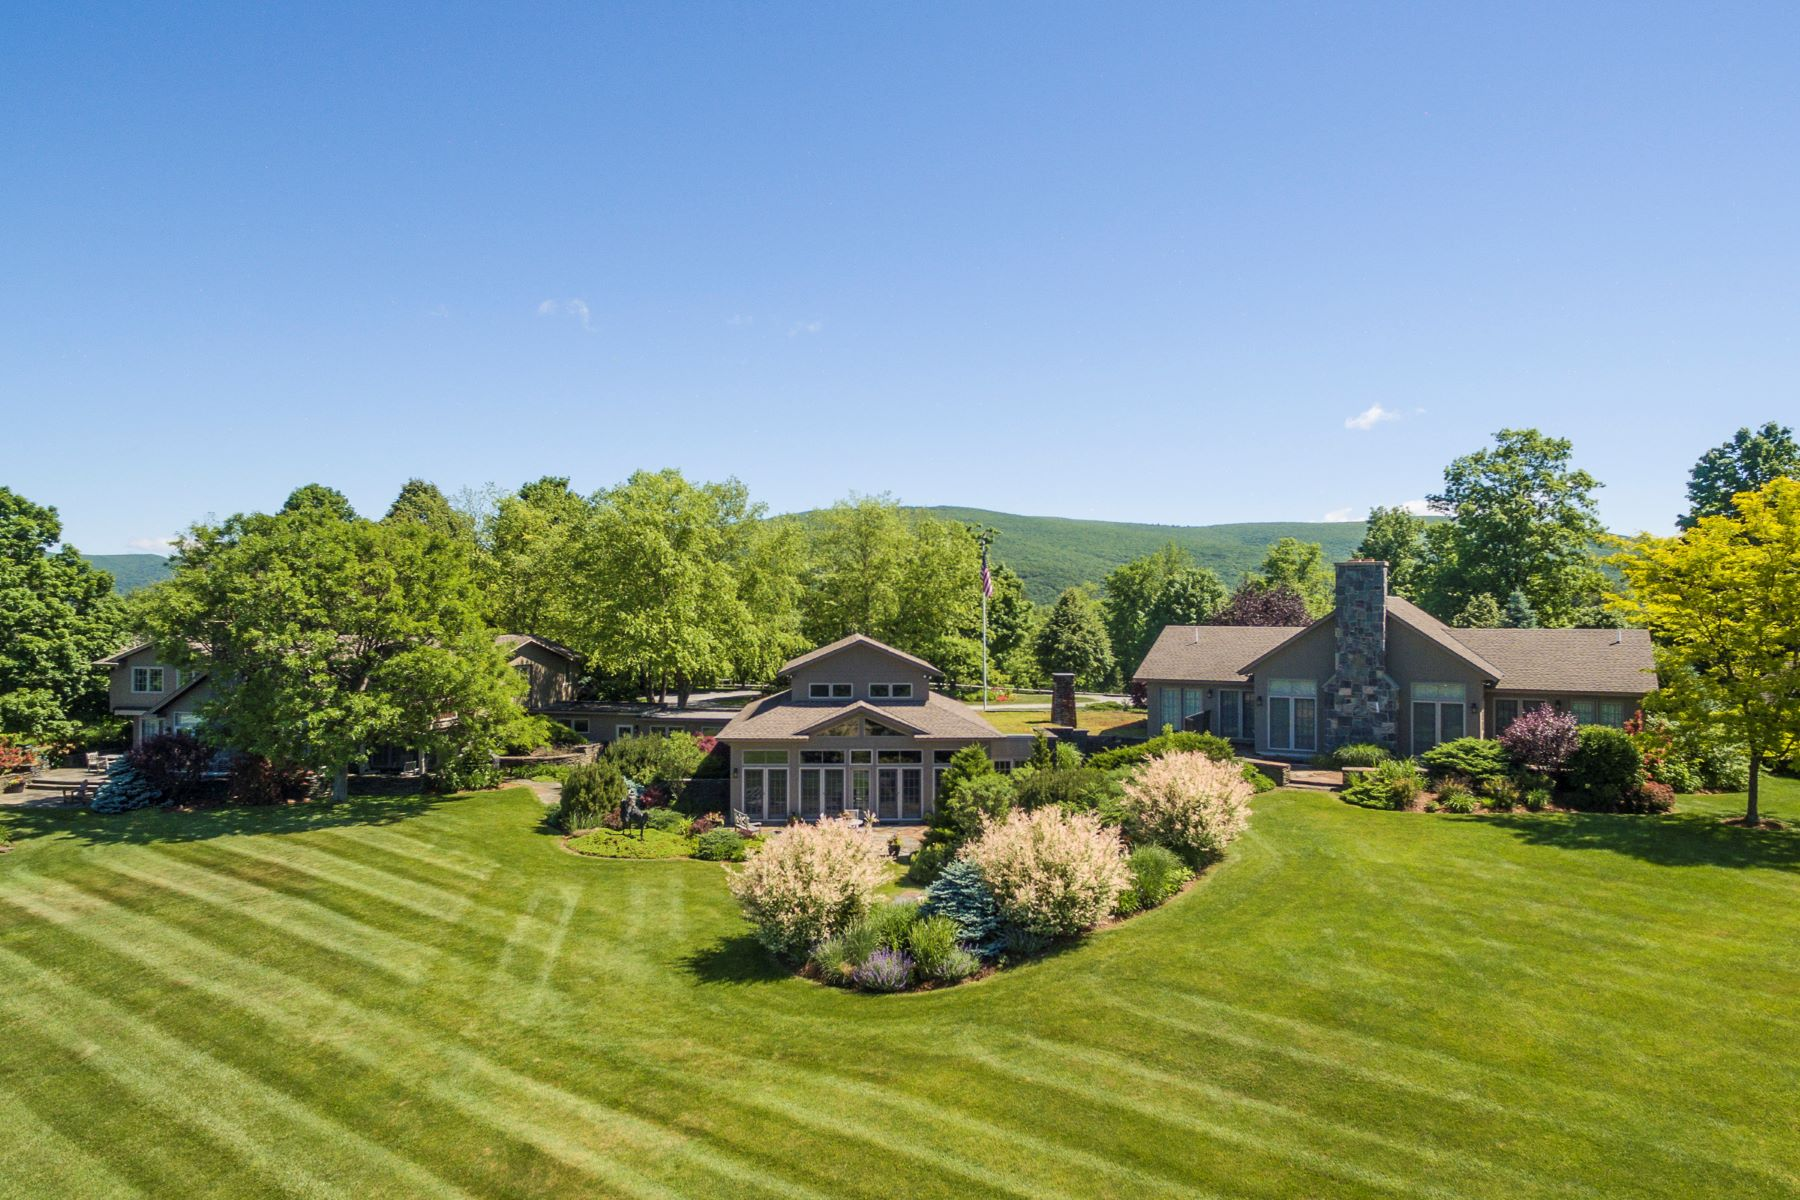 Vivienda unifamiliar por un Venta en Live your dream in this stunning 11.7 acre Country Estate with Indoor Pool and T 465 Stratton Rd Williamstown, Massachusetts 01267 Estados Unidos